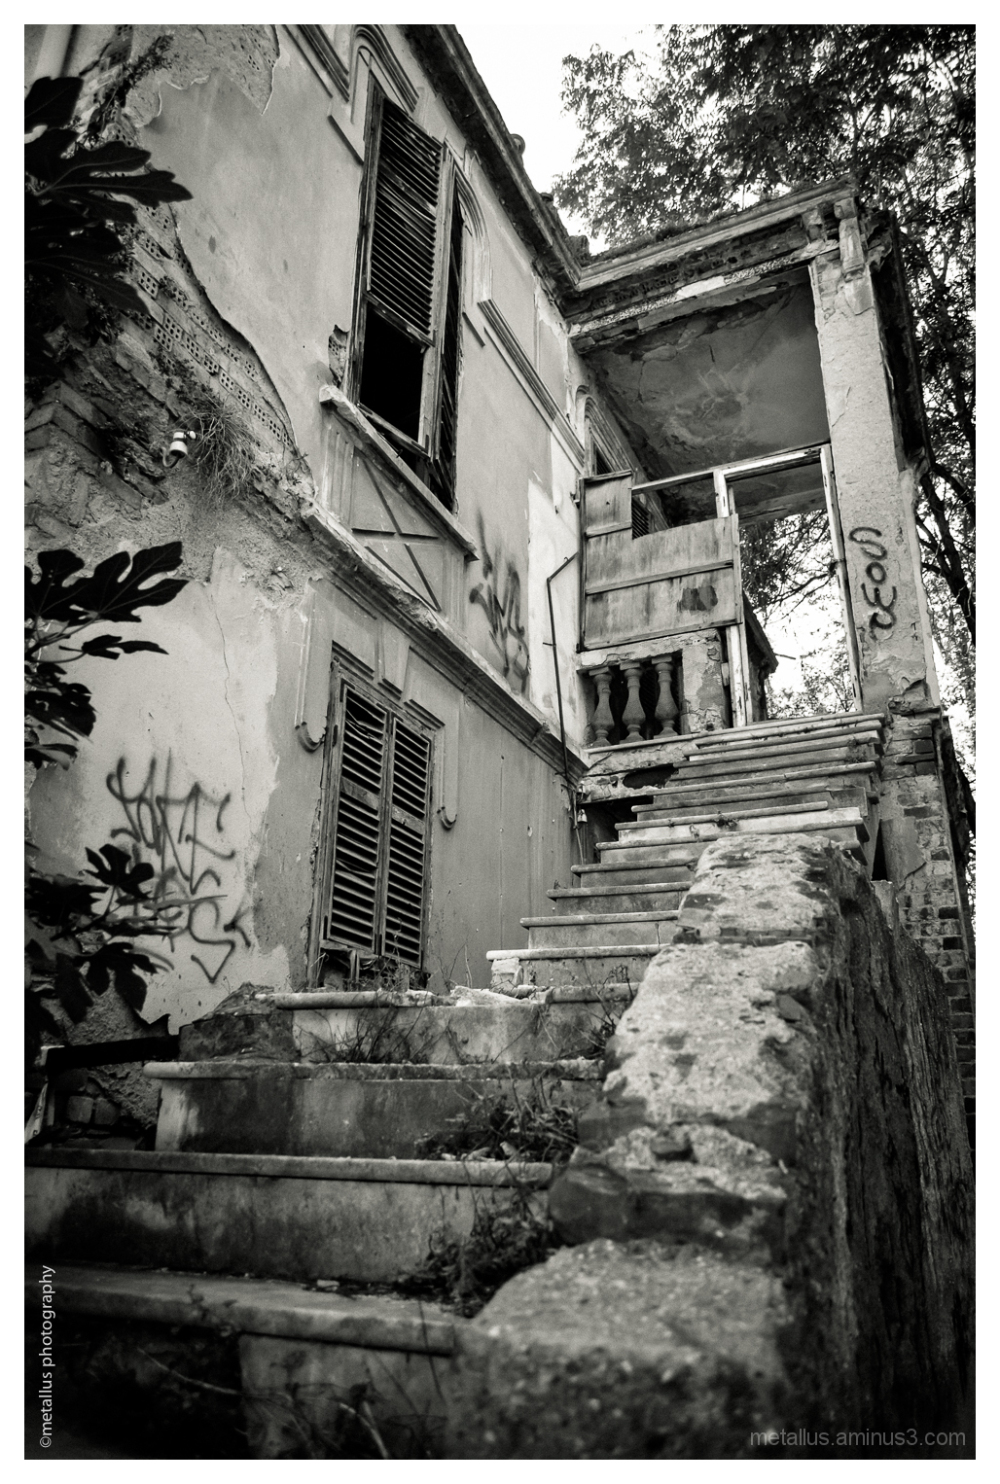 Abandoned House, Thessaloniki, Greece 2013